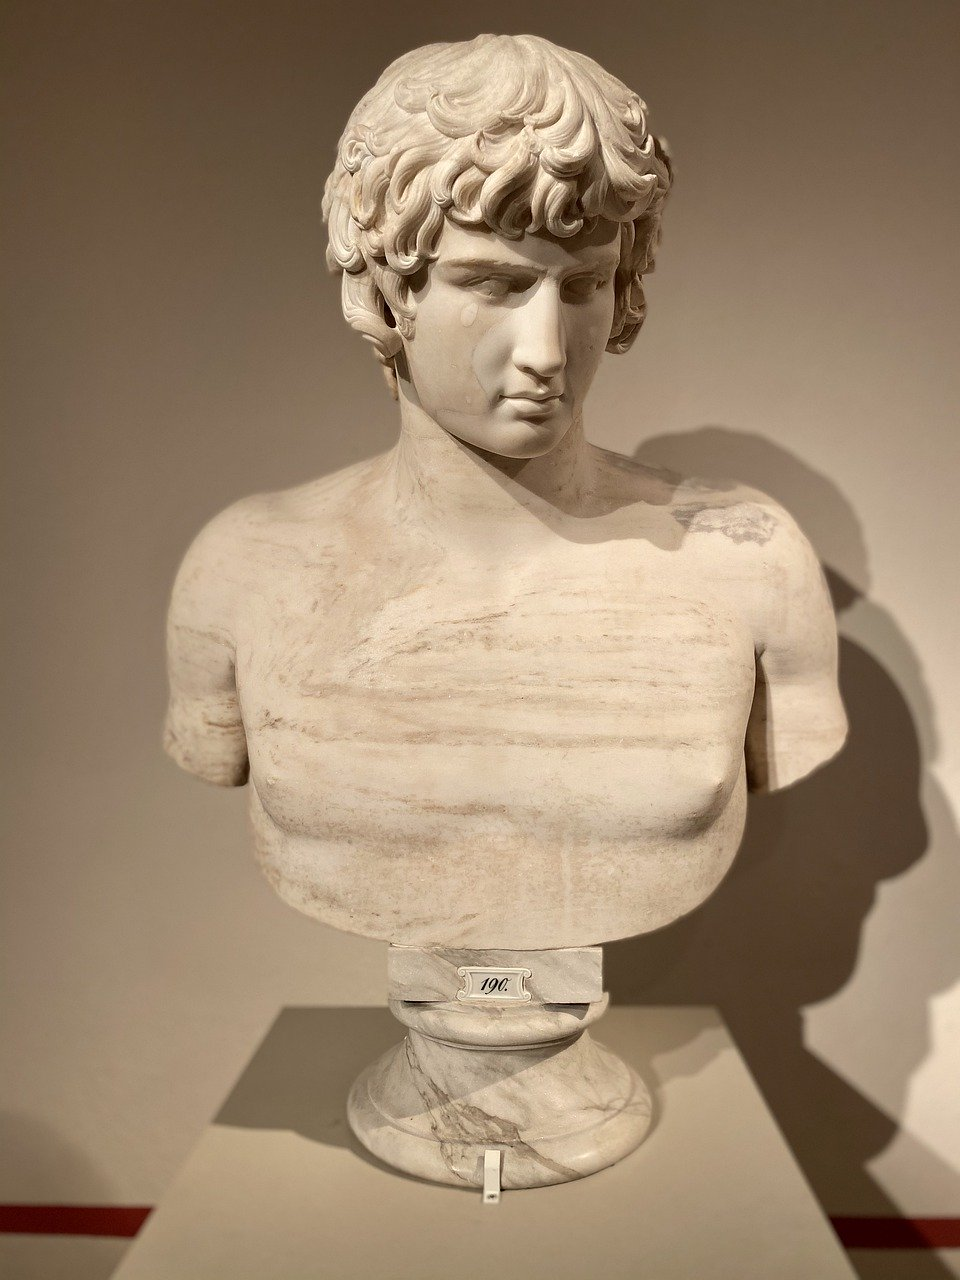 Antinous Sculpture used for The Odyssey in Irish